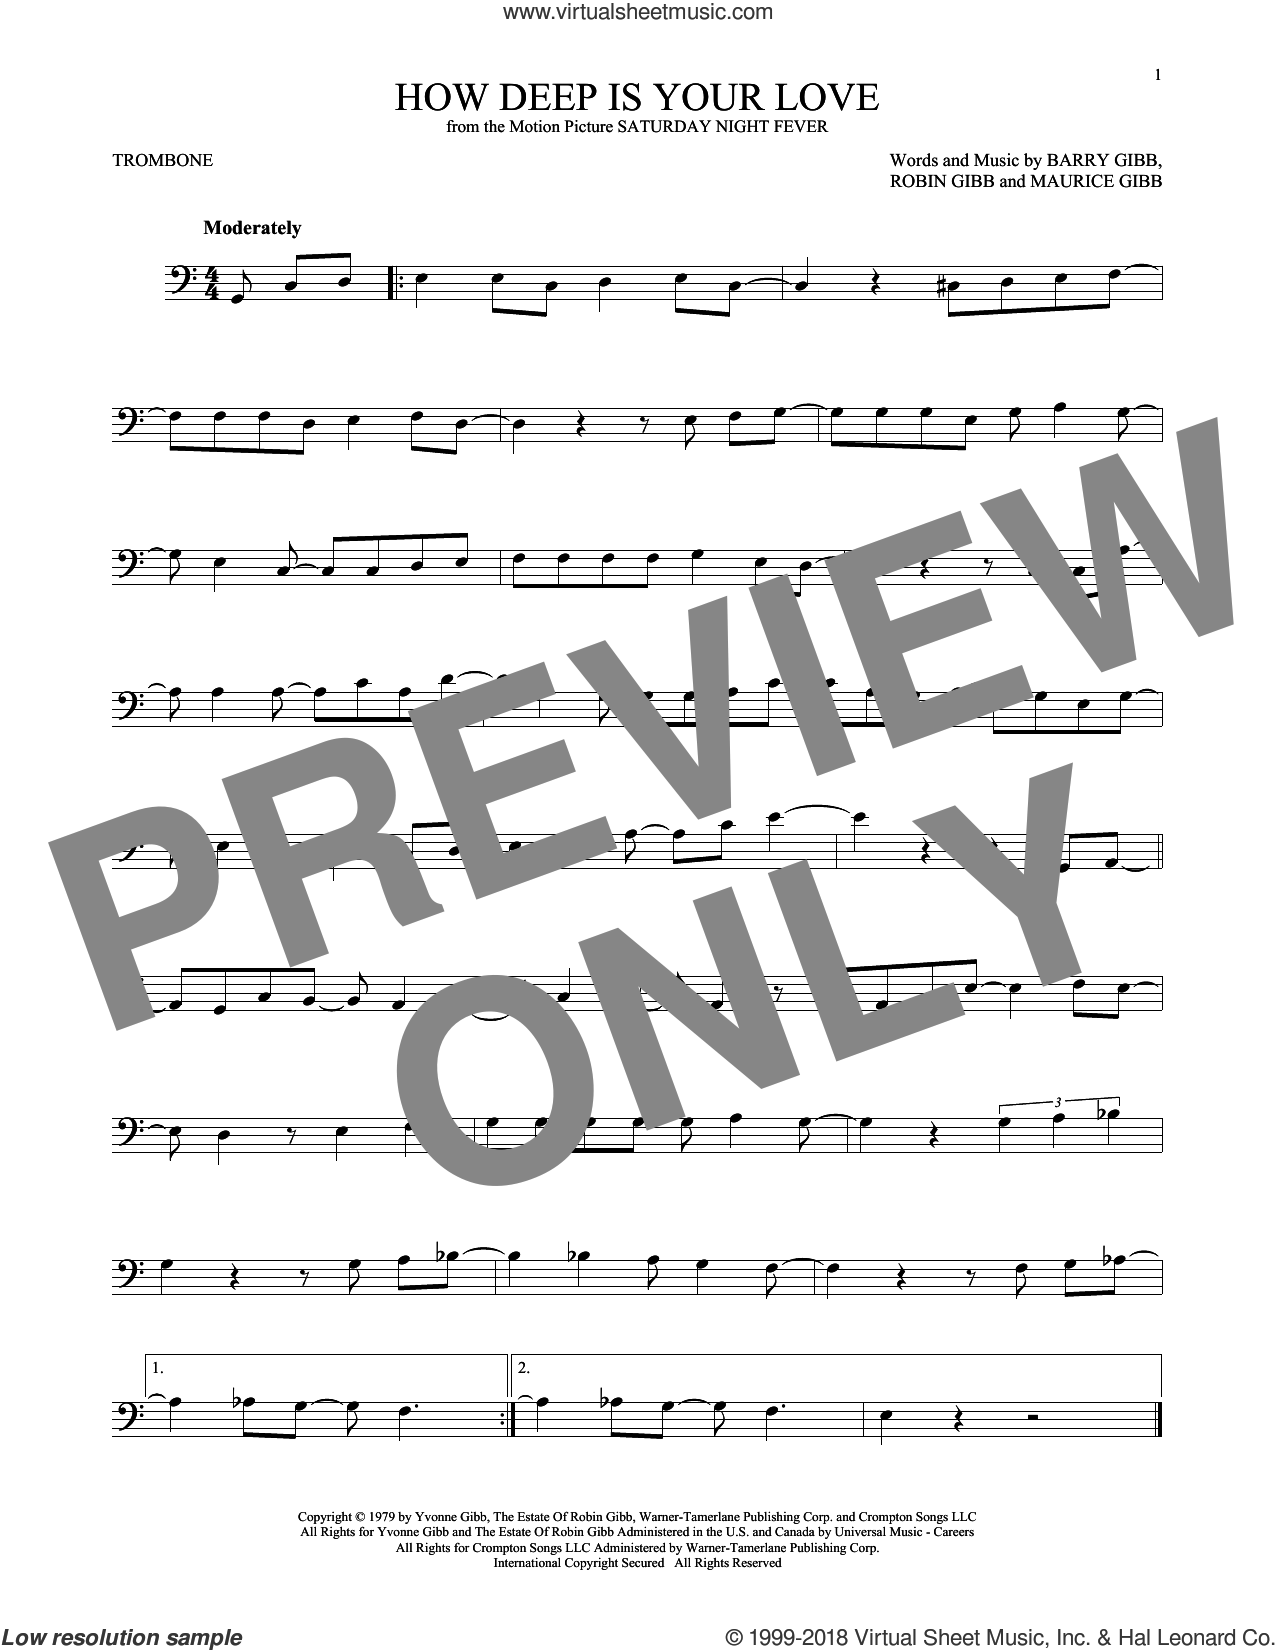 How Deep Is Your Love sheet music for trombone solo by Robin Gibb, Bee Gees, Barry Gibb and Maurice Gibb. Score Image Preview.